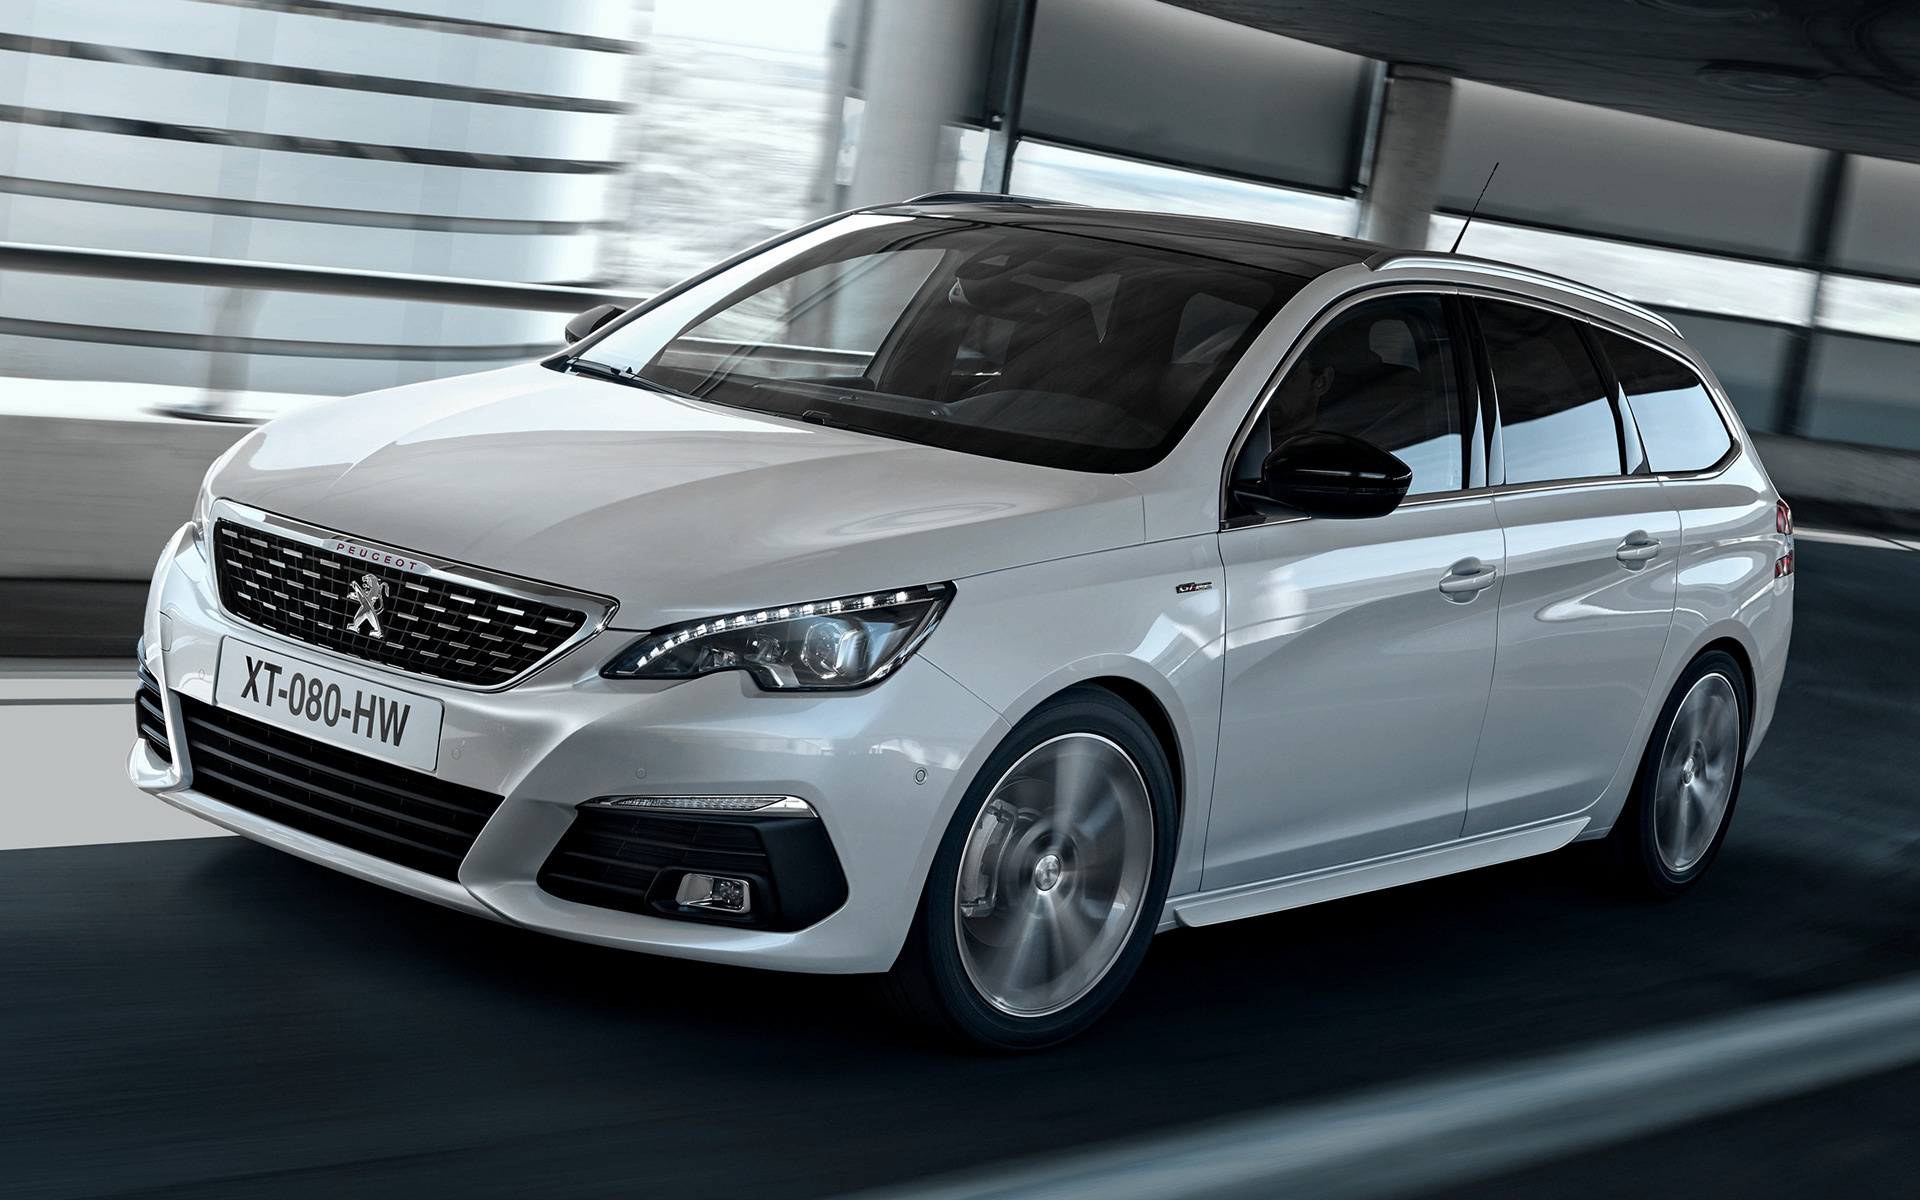 2017 Peugeot 308 Sw Gt Line Wallpapers And Hd Images